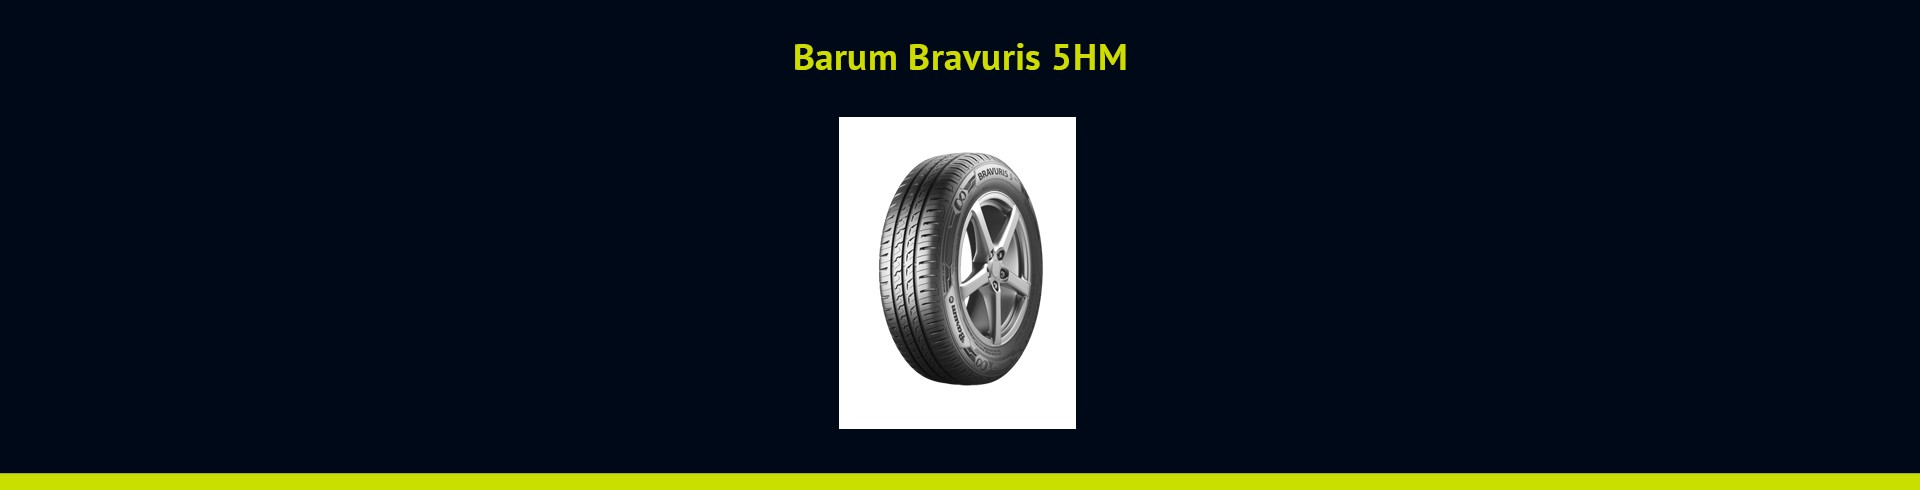 Barum Bravuris 5HM